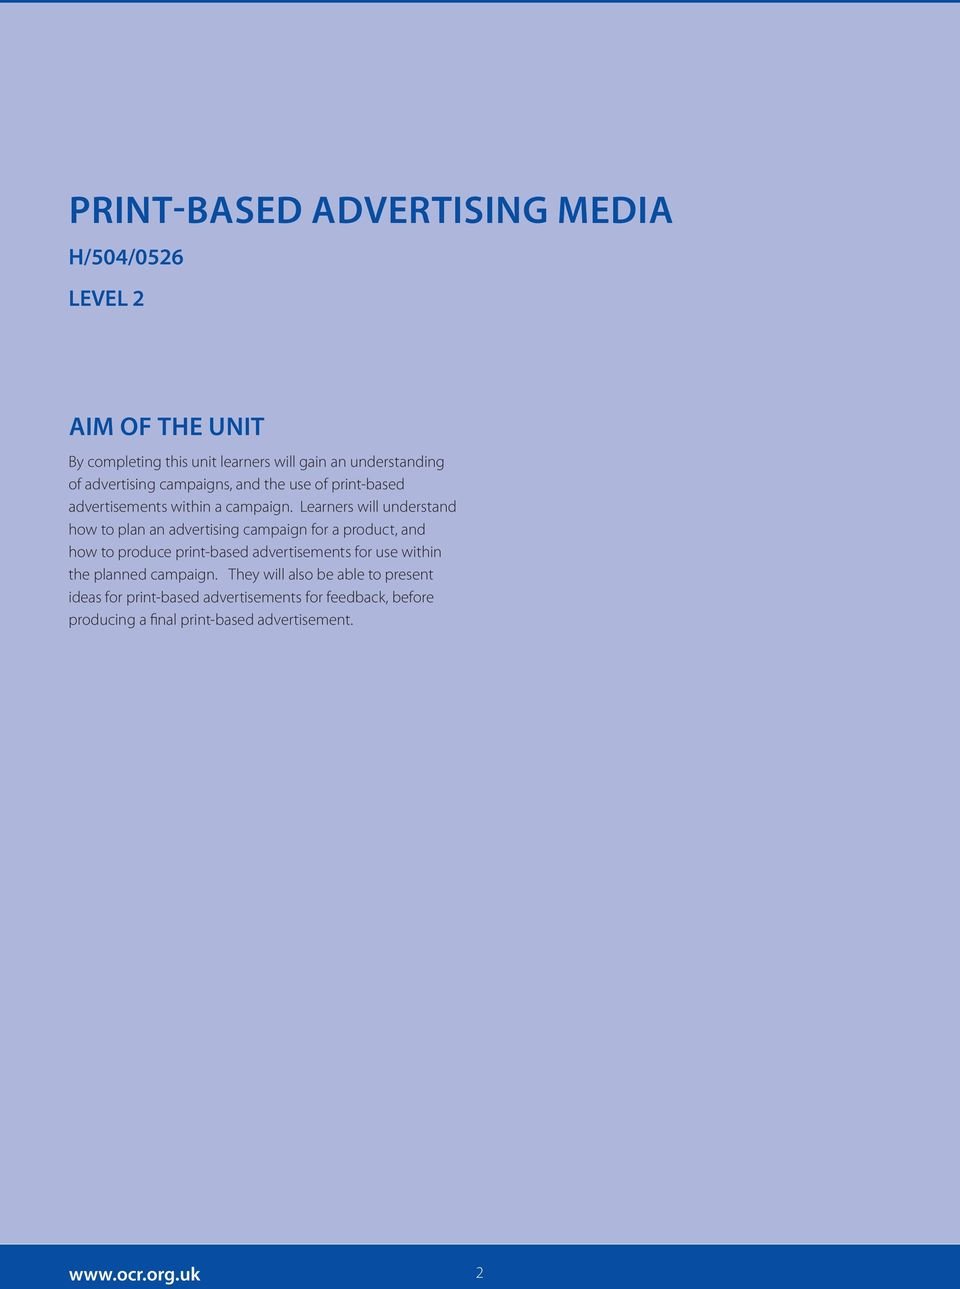 Learners will understand how to plan an advertising campaign for a product, and how to produce print-based advertisements for use